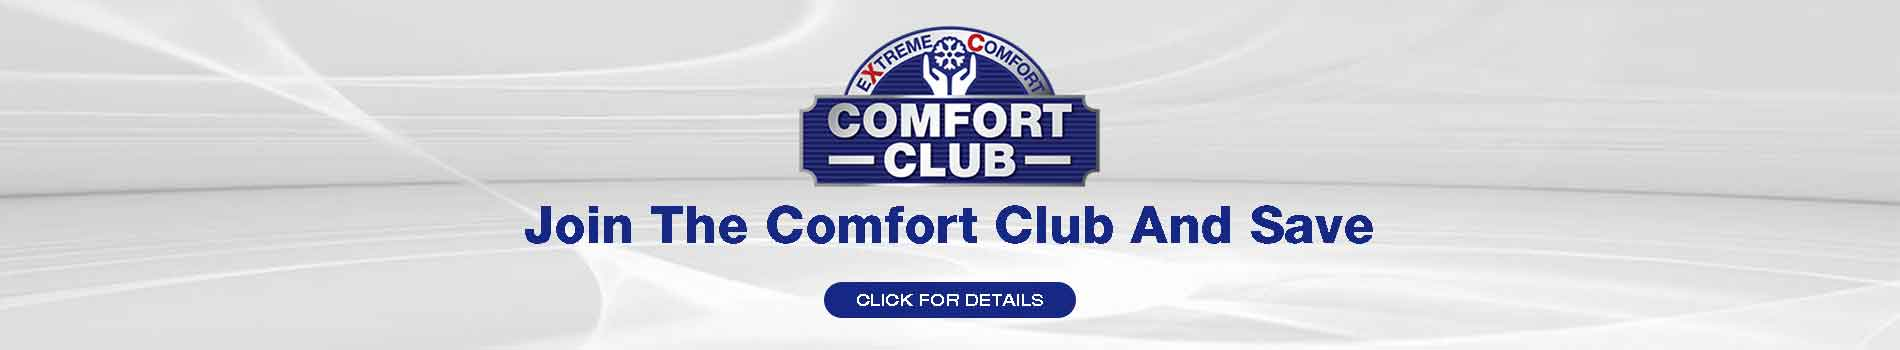 Air Conditioning Sales, Installation & Repair | Extreme Comfort